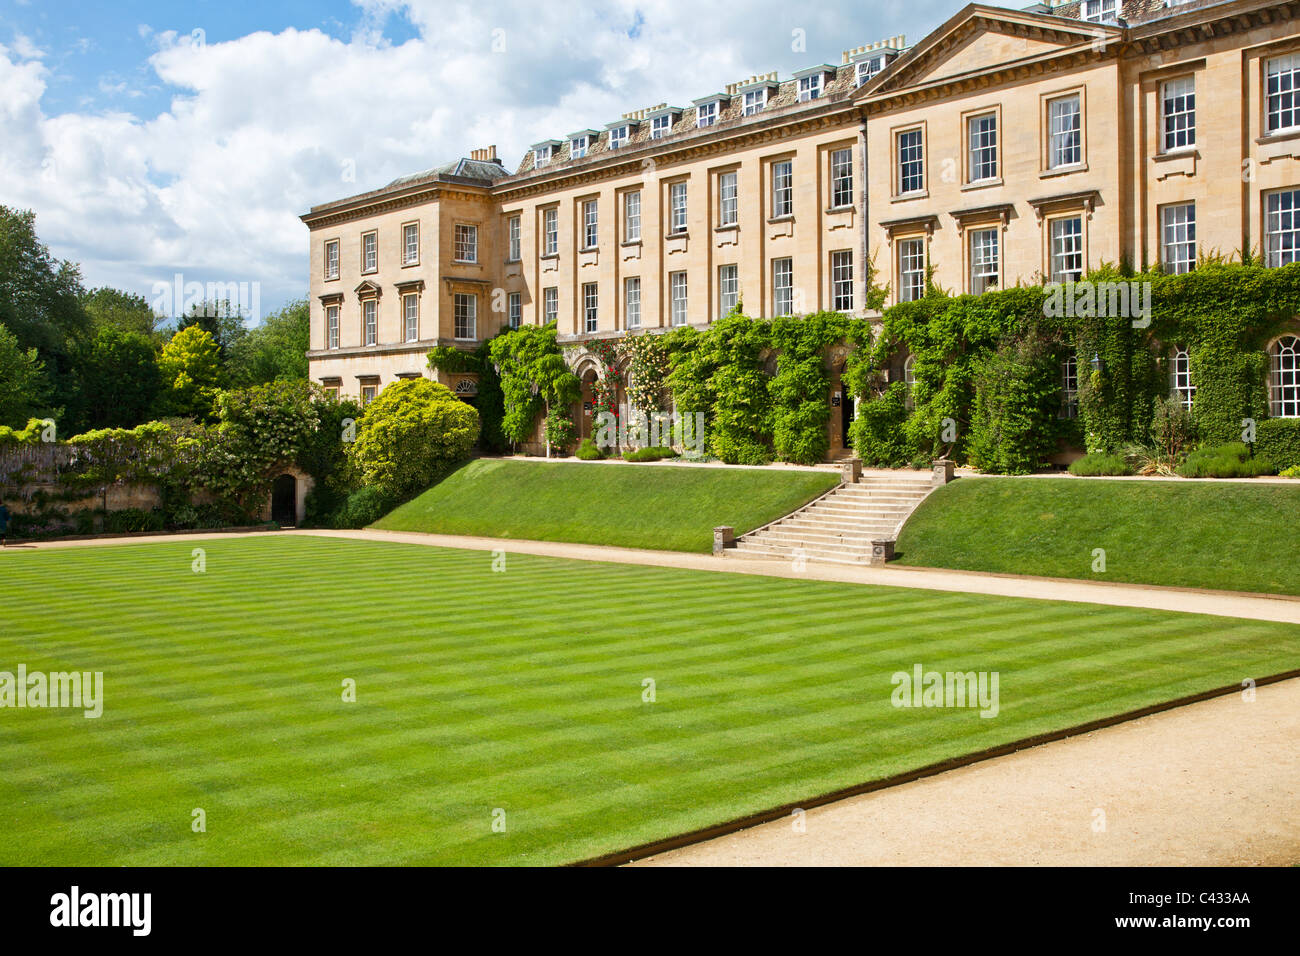 The main quad of Worcester College, Oxford University, Oxfordshire, England, UK, Great Britain - Stock Image